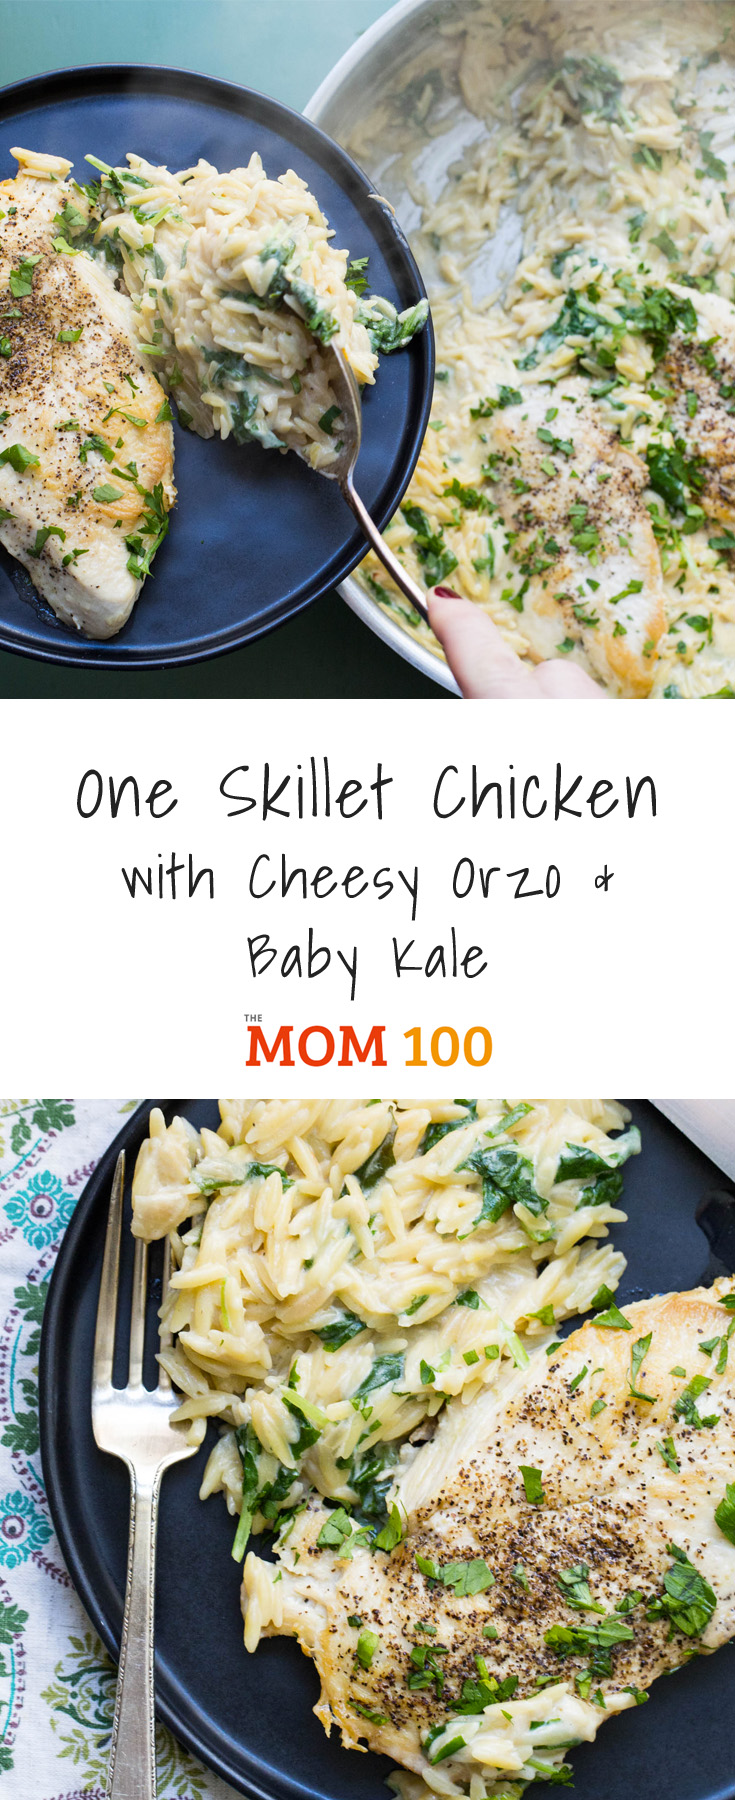 A one-skillet meal is the best combination of convenience and comfort food, this One Skillet Chicken with Cheesy Orzo and Baby Kale dish is no exception.